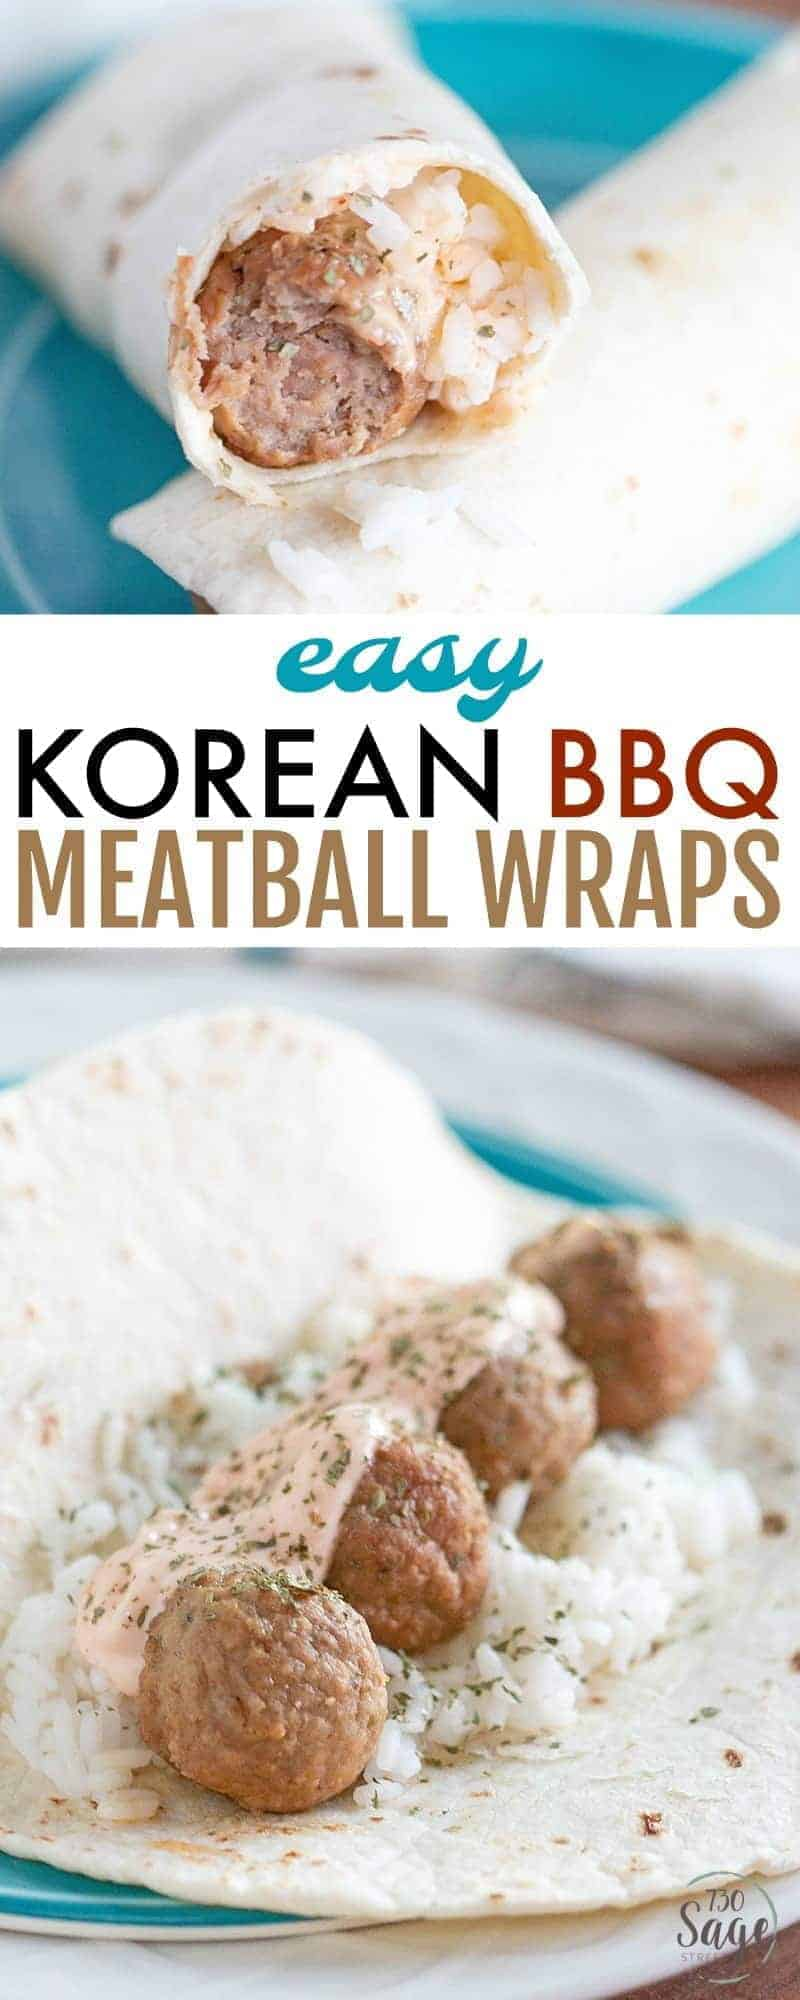 Get a delicious dinner on the table quickly - in under 30 minutes - with these delicious and super easy Korean BBQ Meatball Wraps.